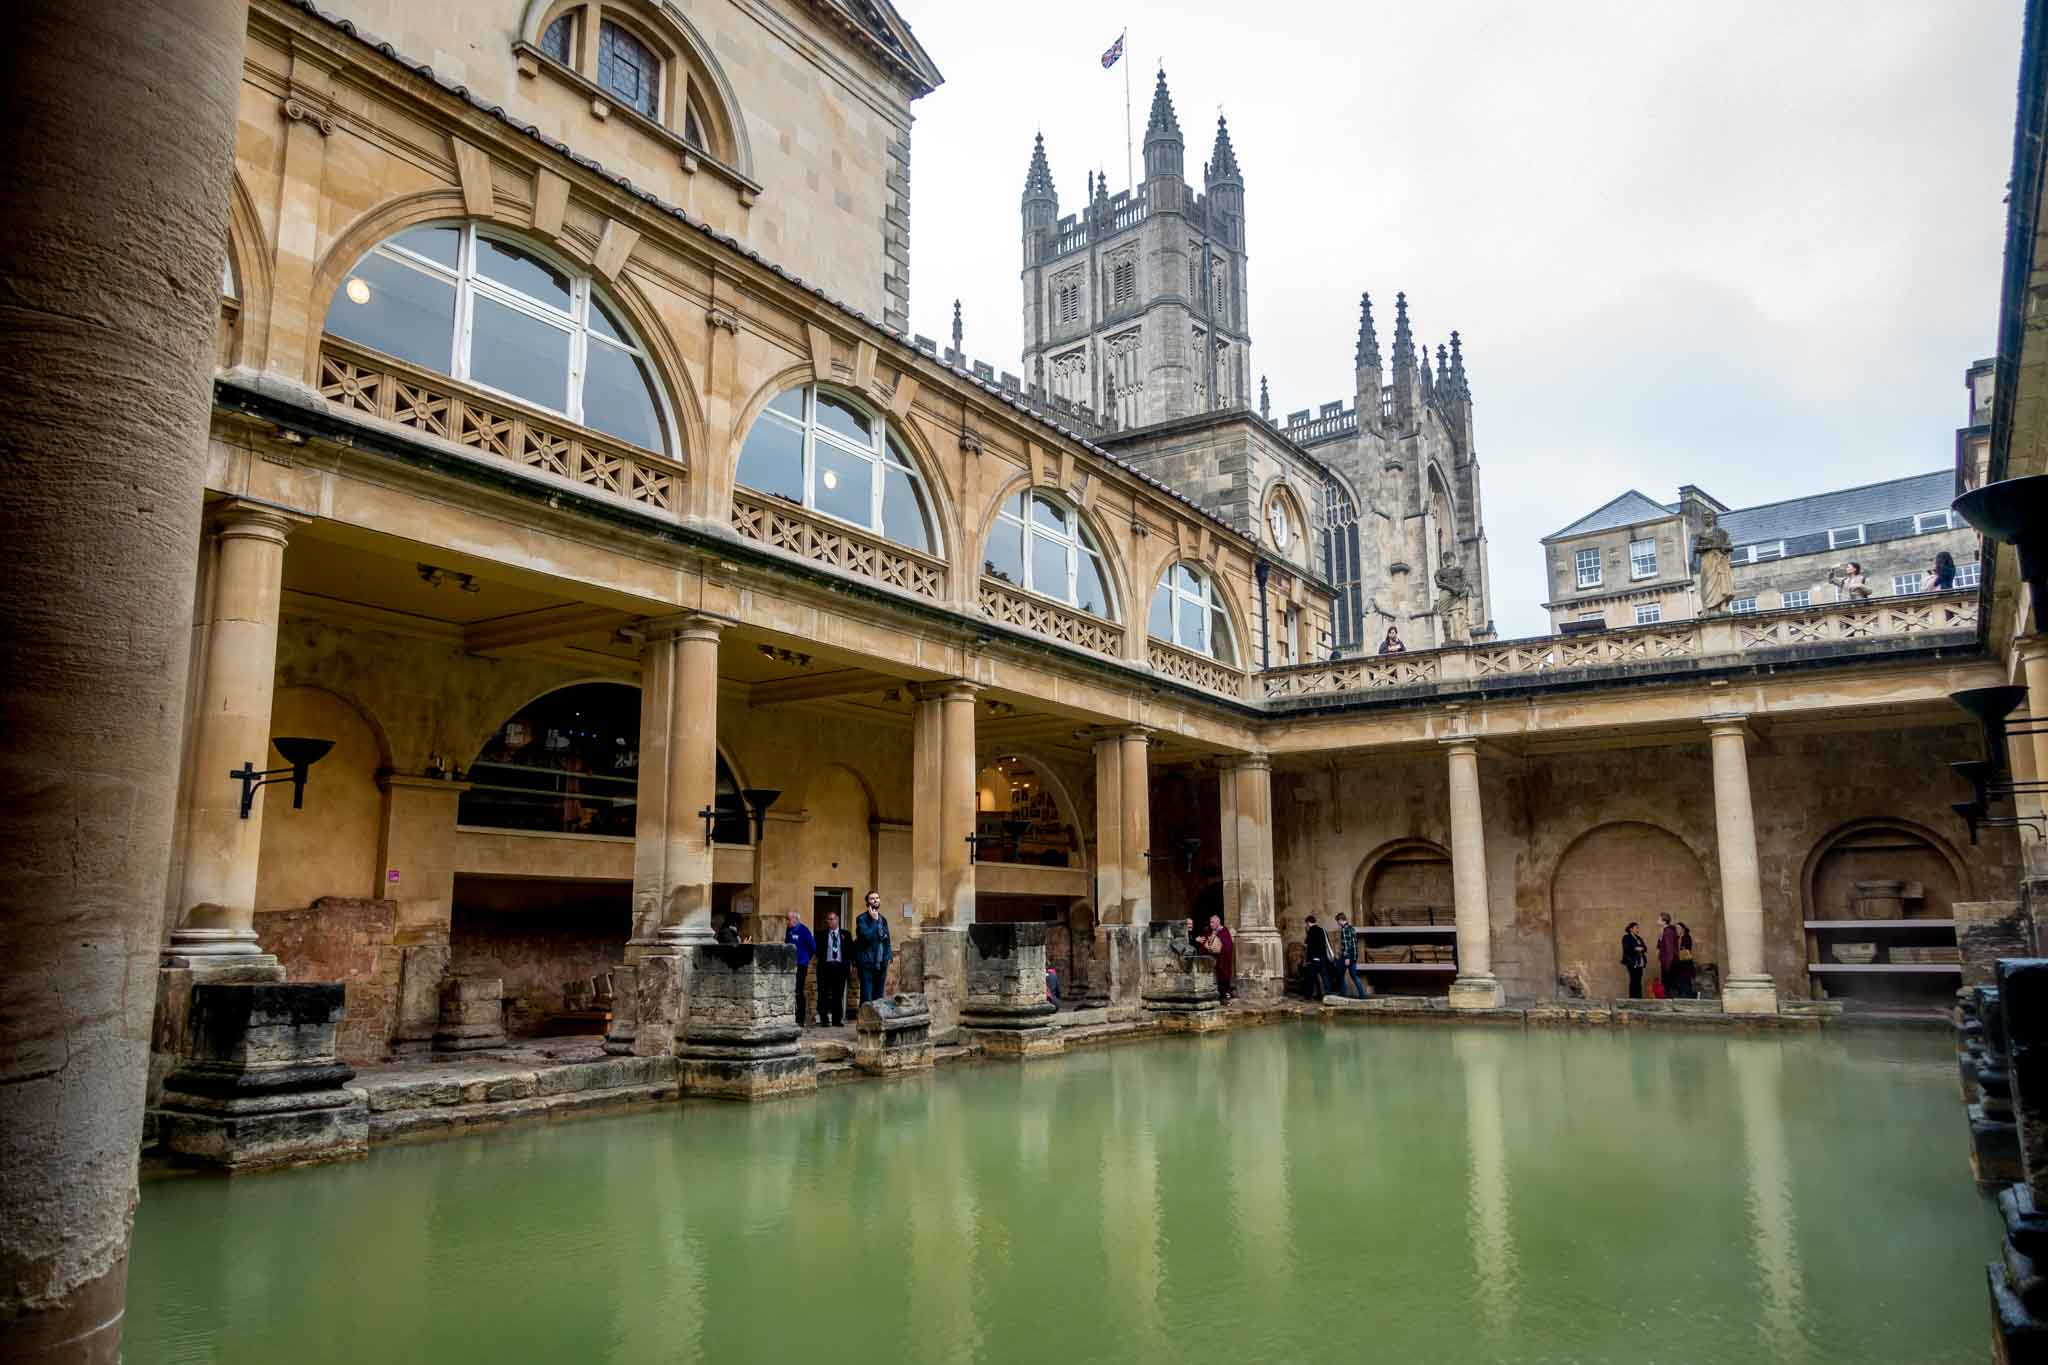 Outdoor hot springs pool known as the Great Bath surrounded by Victorian statues